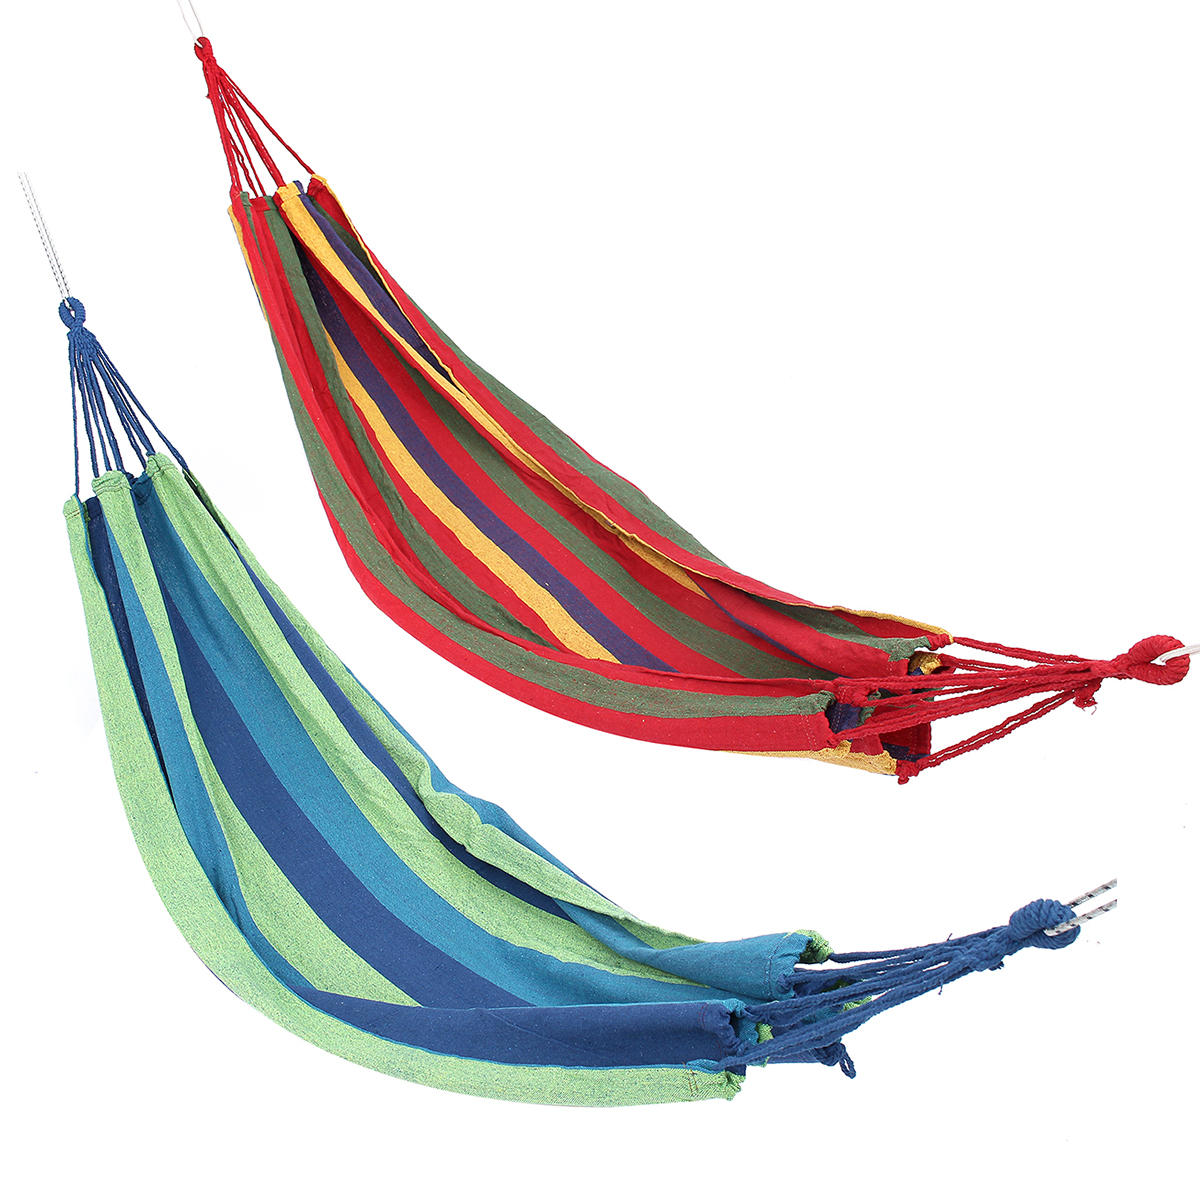 Double Large Swing Hammock Canvas Camping Hang Bed Garden Travel Beach Outdoor Chair